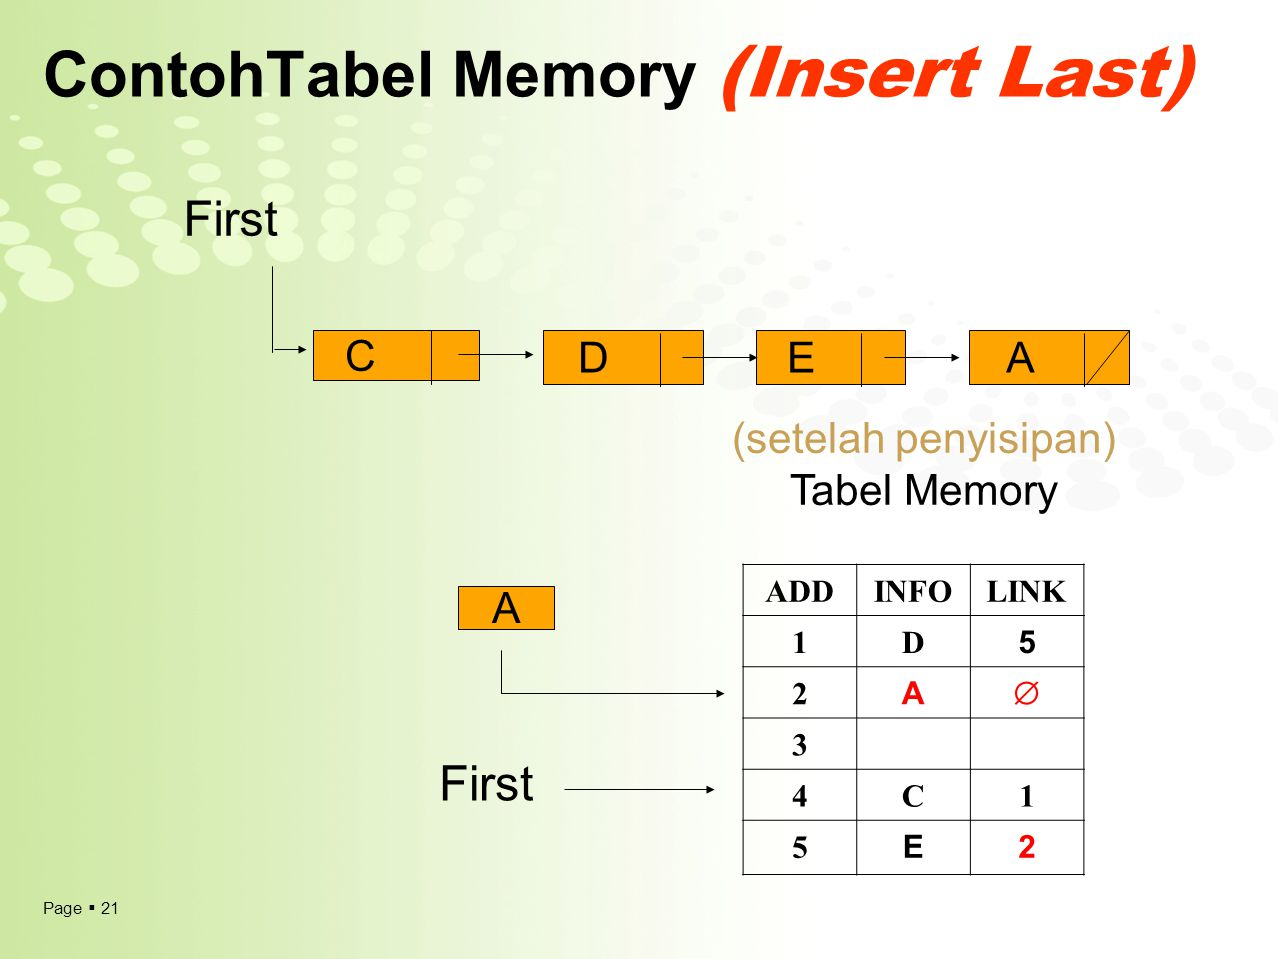 Page  21 ContohTabel Memory (Insert Last) (setelah penyisipan) Tabel Memory A First C DE ADDINFOLINK 1D 5 2 A  3 4C1 5 E2 First A